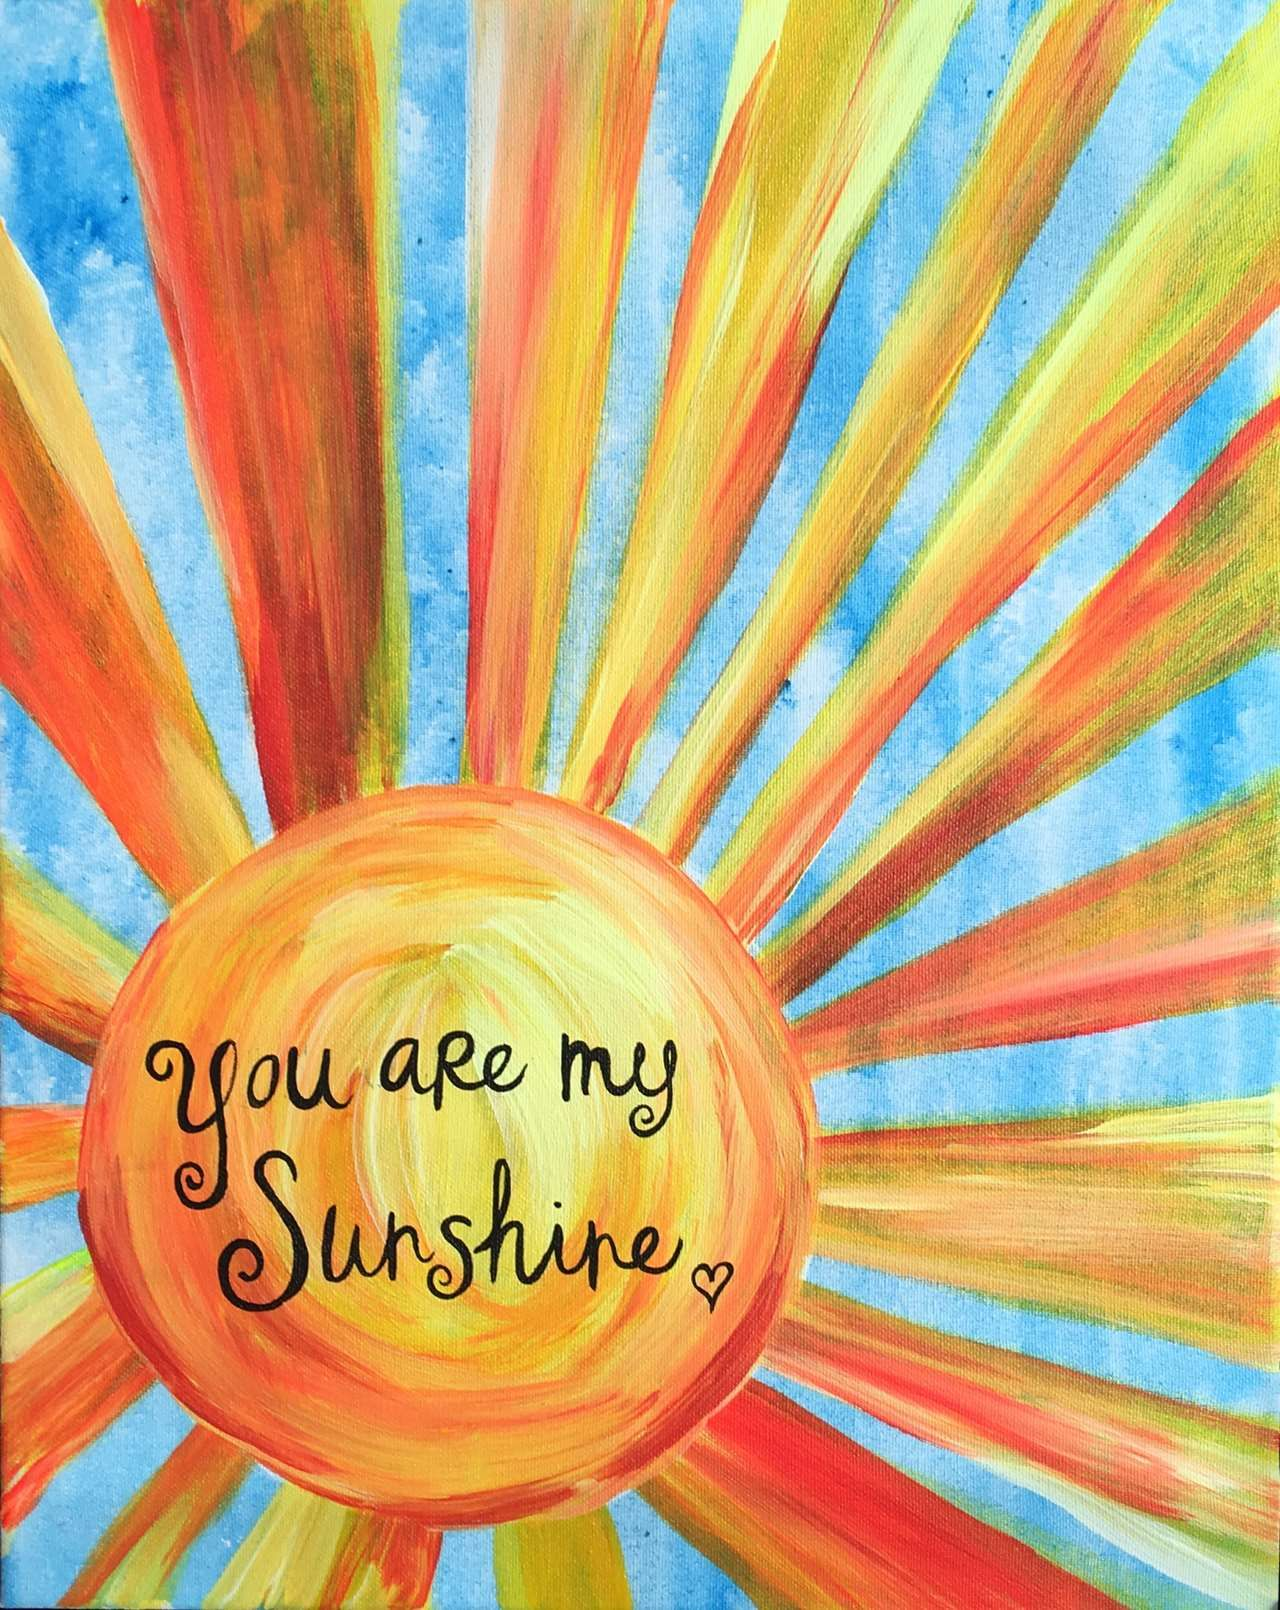 Join us at Pinot's Palette - Leawood on Sun Apr 24, 2016 4:00-6:00PM for You Are My #Sunshine. Seats are limited, reserve yours today!